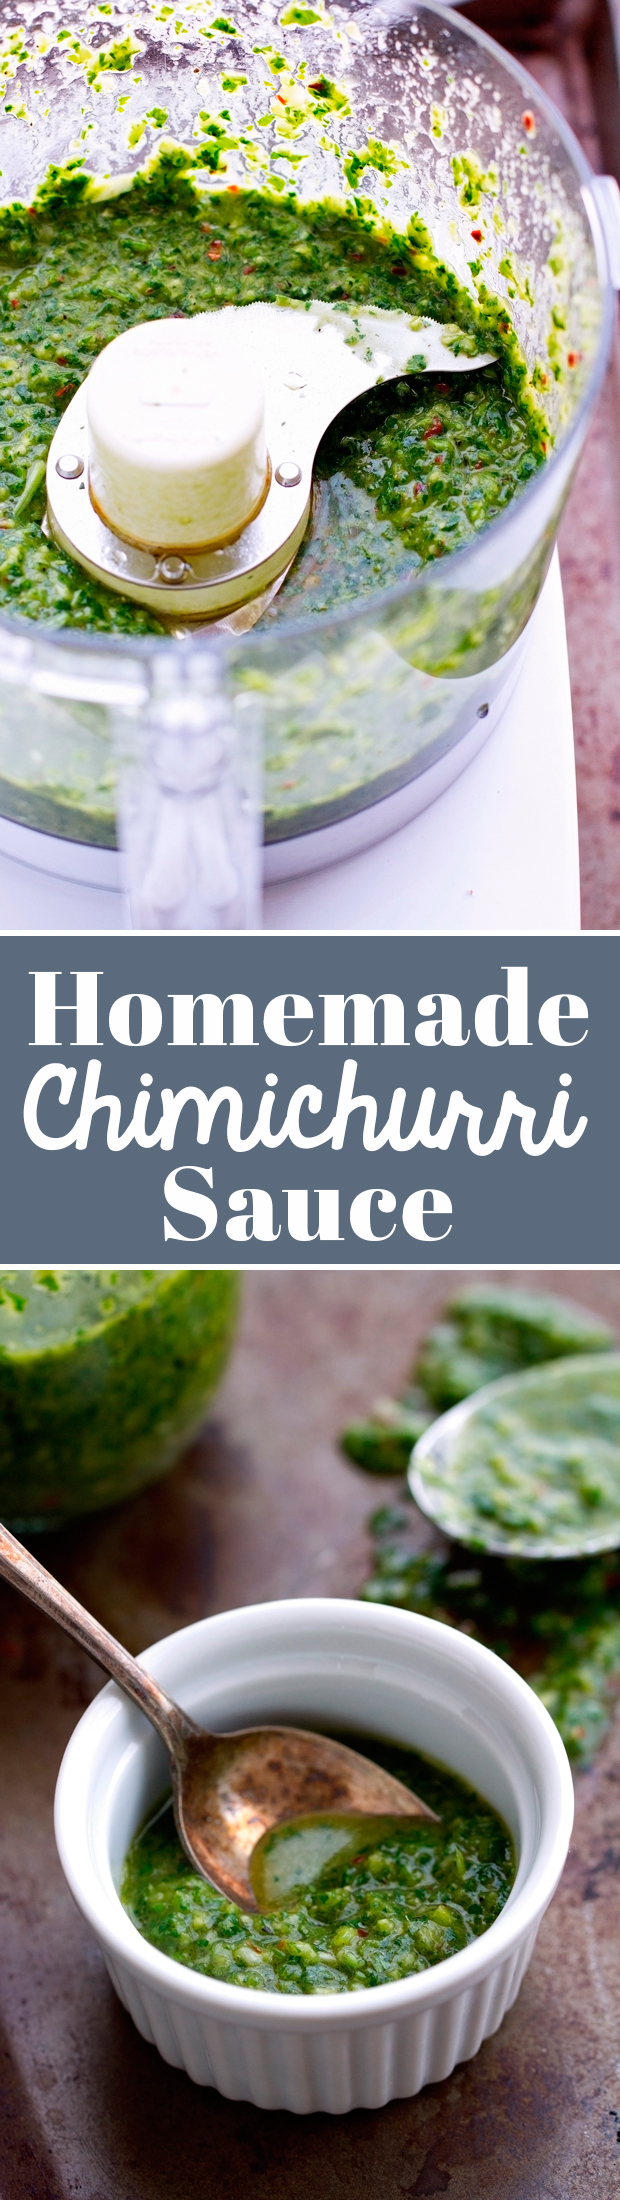 Homemade Chimichurri Sauce - perfect to top on grilled meats and tons of other dishes! #chimichurrisauce #homemadesauce #homemadechimichurrisauce | Littlespicejar.com